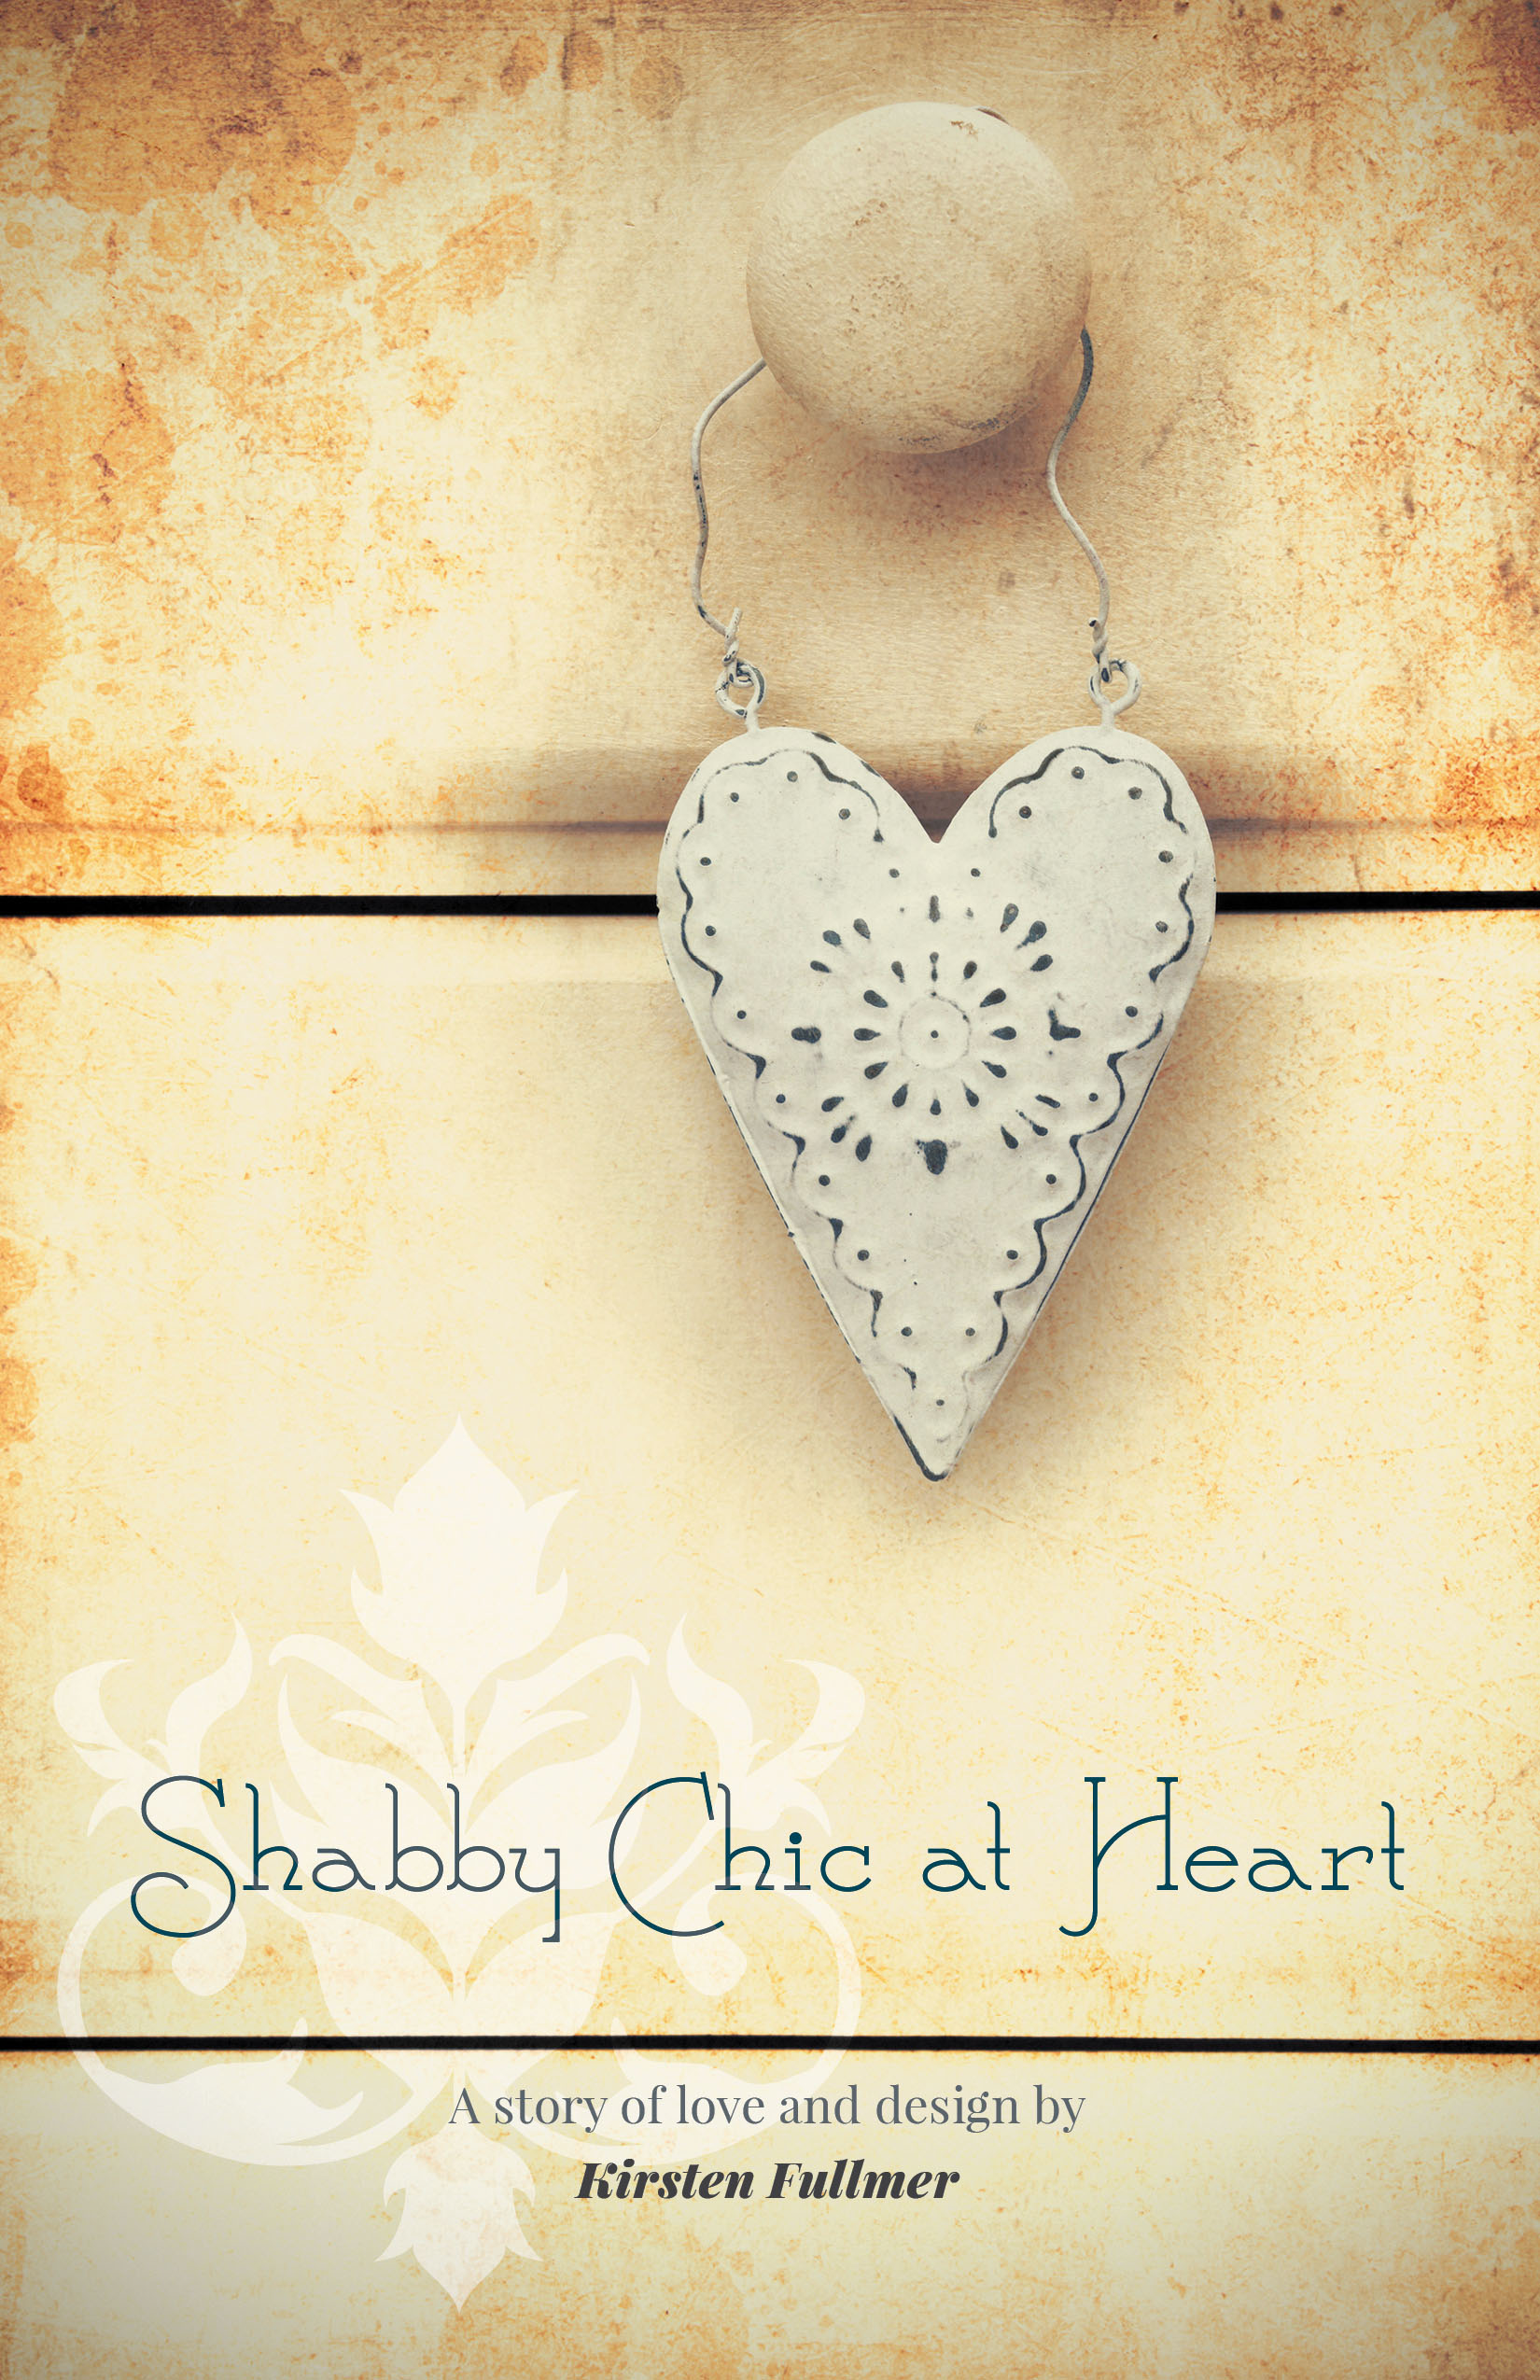 Shabby Chic at Heart Book Cover